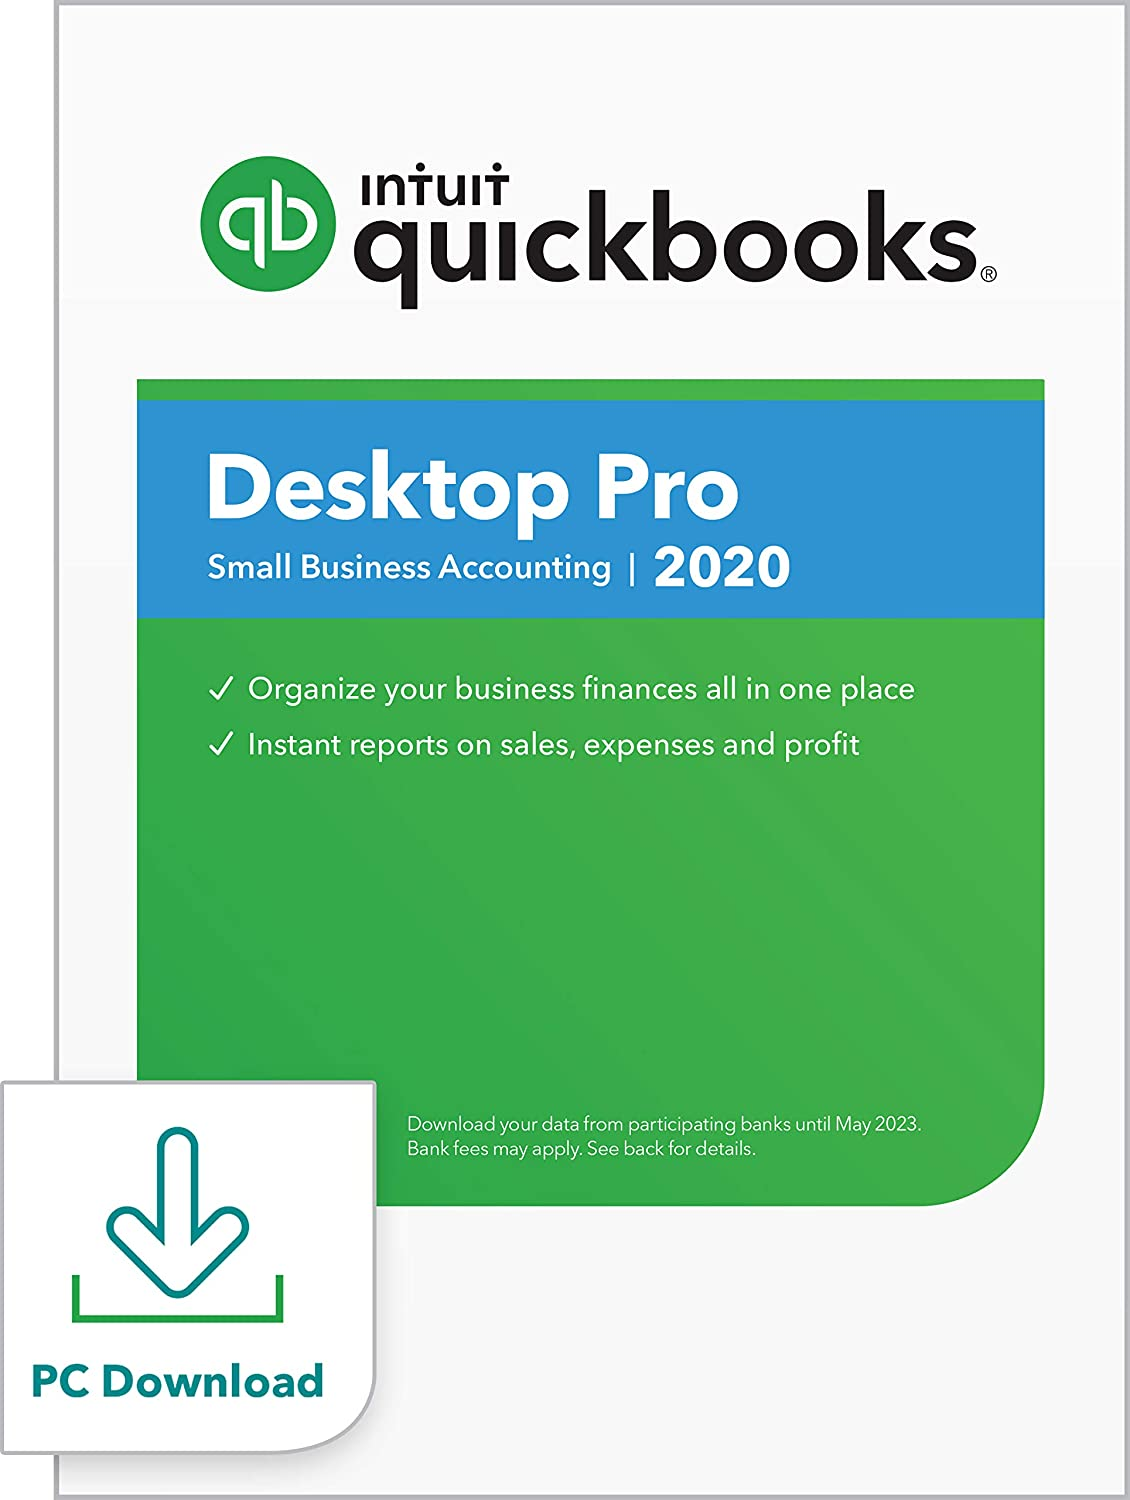 Home Office Tax Deduction 2020.Quickbooks Desktop Pro 2020 Accounting Software For Small Business With Amazon Exclusive Shortcut Guide Pc Download